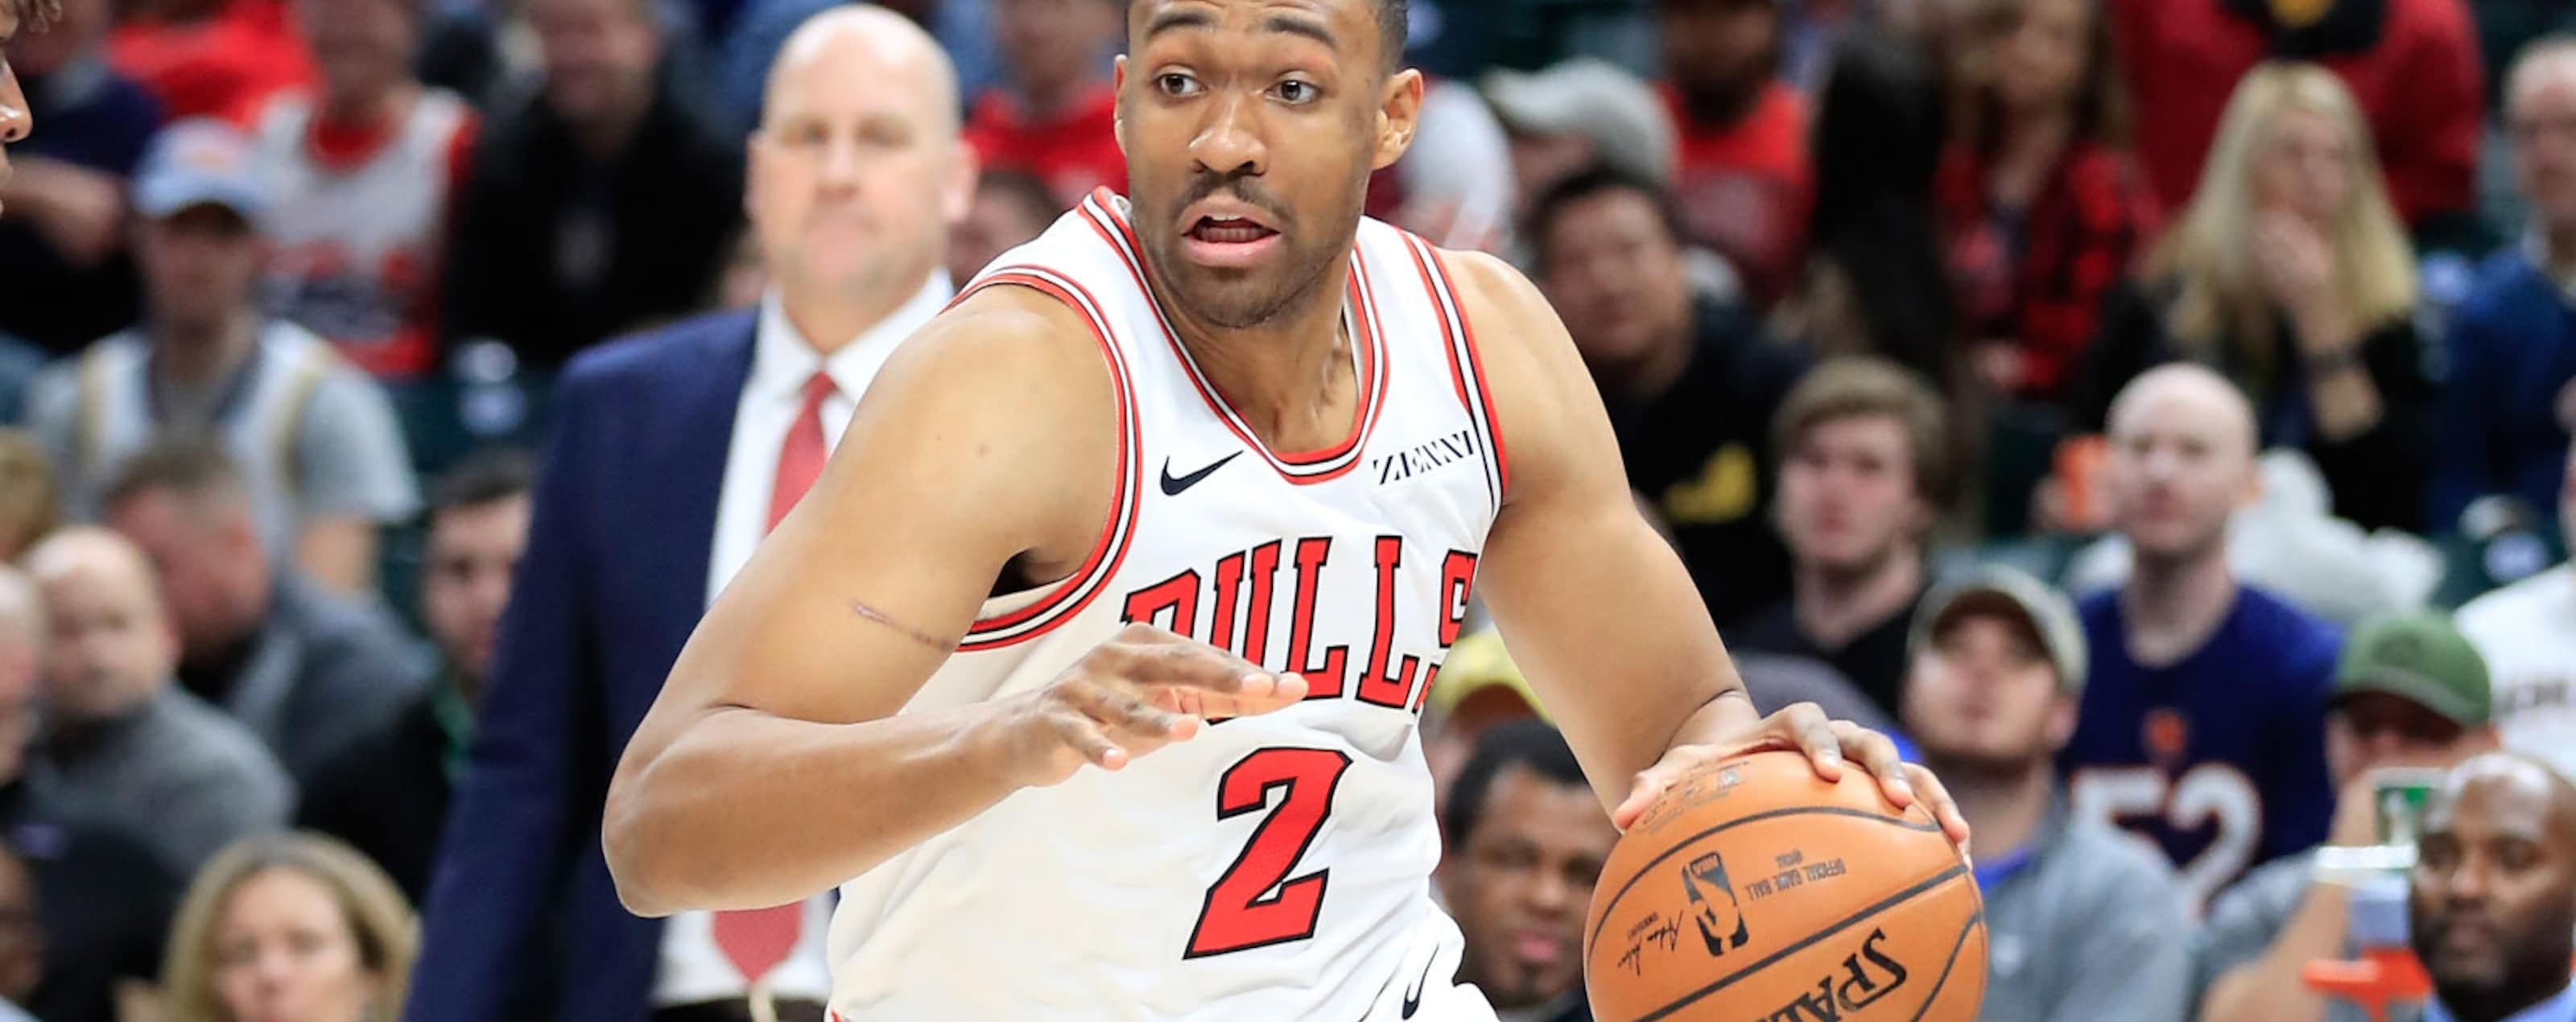 Jabari Parker #2 of the Chicago Bulls dribbles the ball against the Indiana Pacers at Bankers Life Fieldhouse on December 4, 2018 in Indianapolis, Indiana.